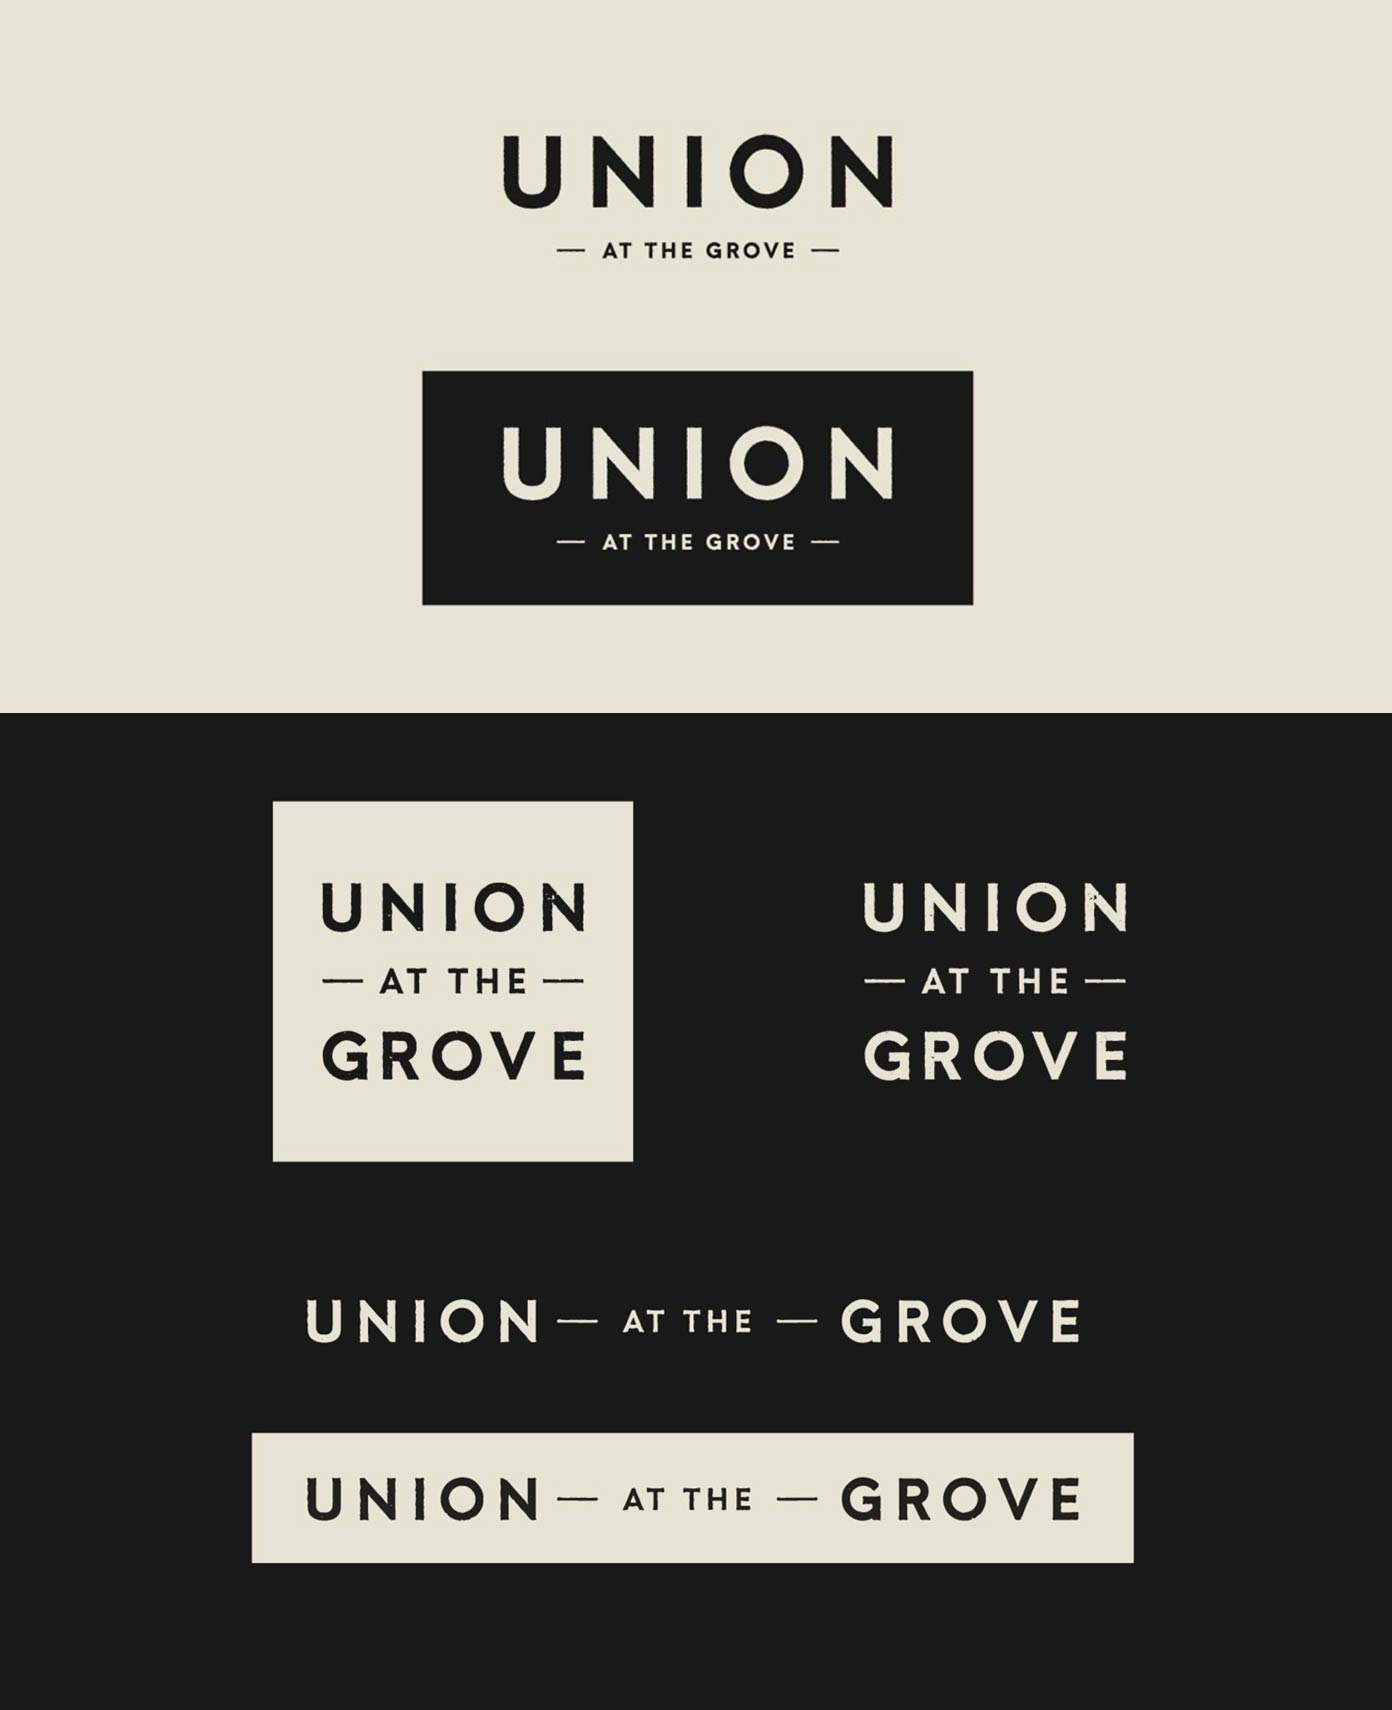 Logos and lockups of the Union at the Grove residential development branding